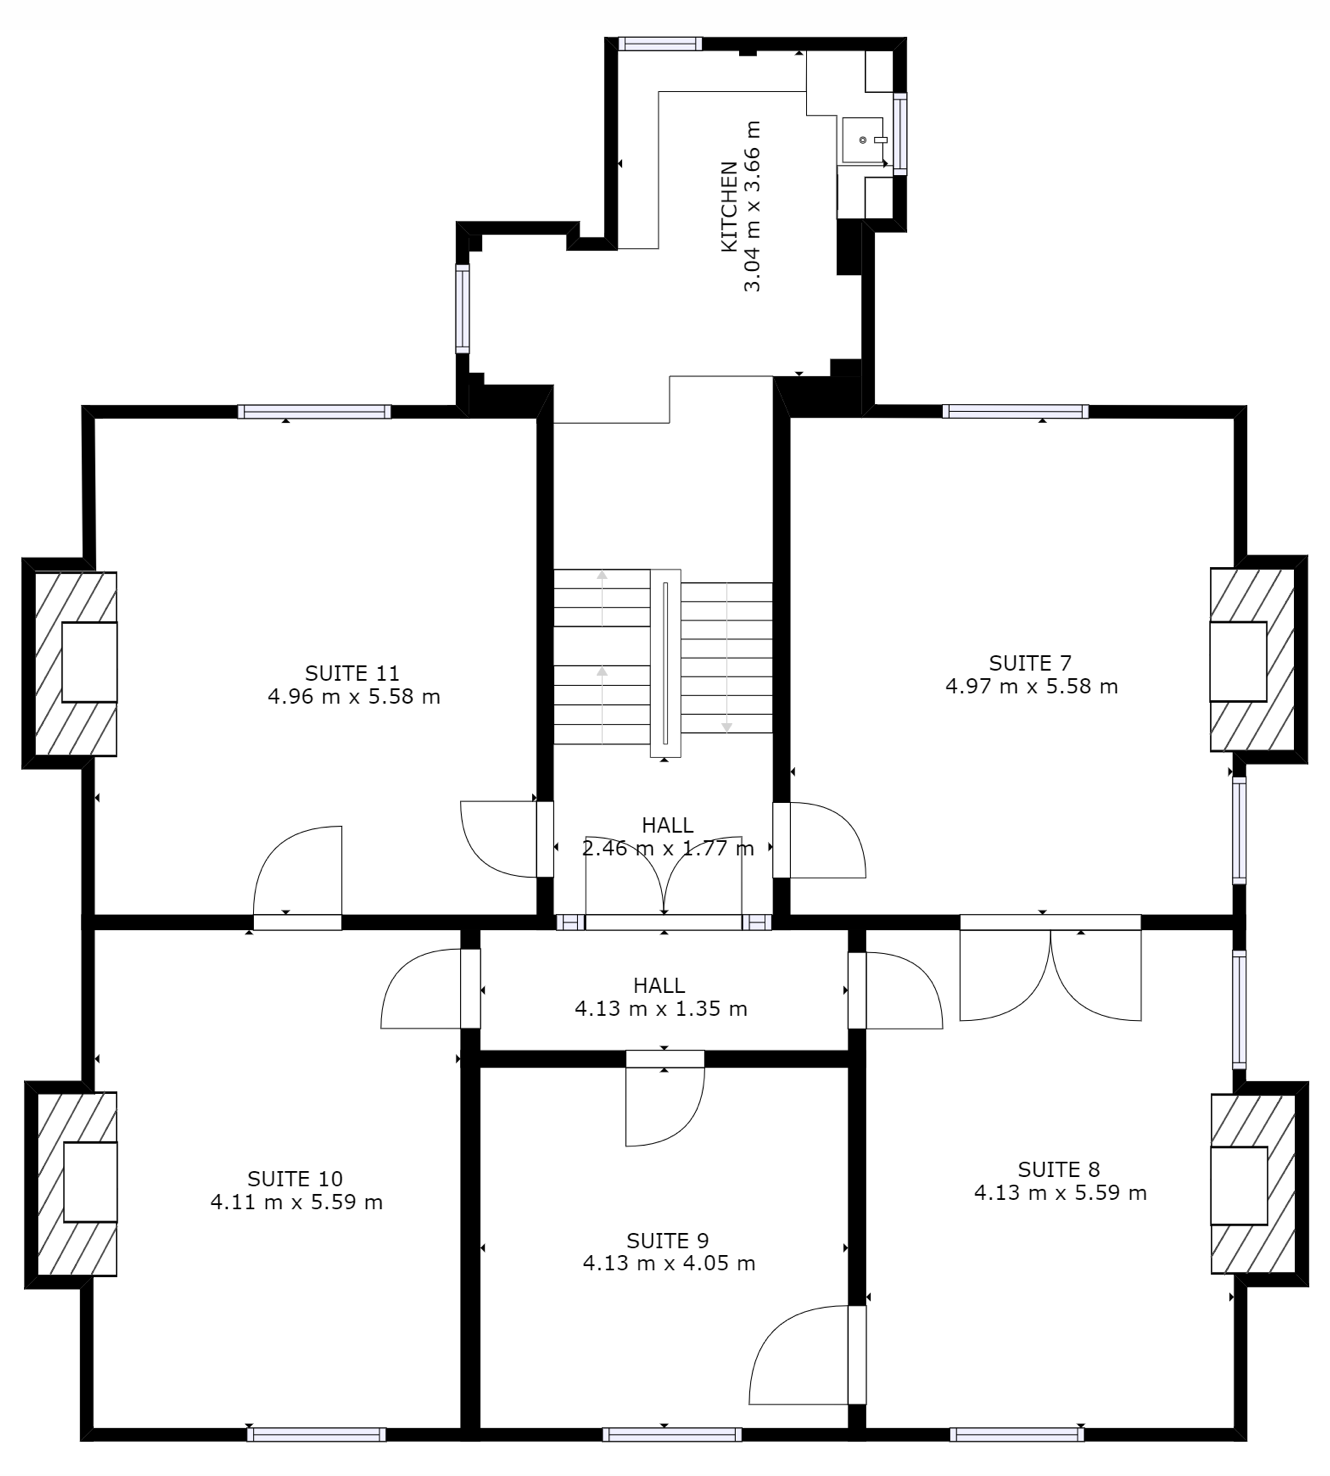 First floor plan of office layout at Markham House, Wokingham